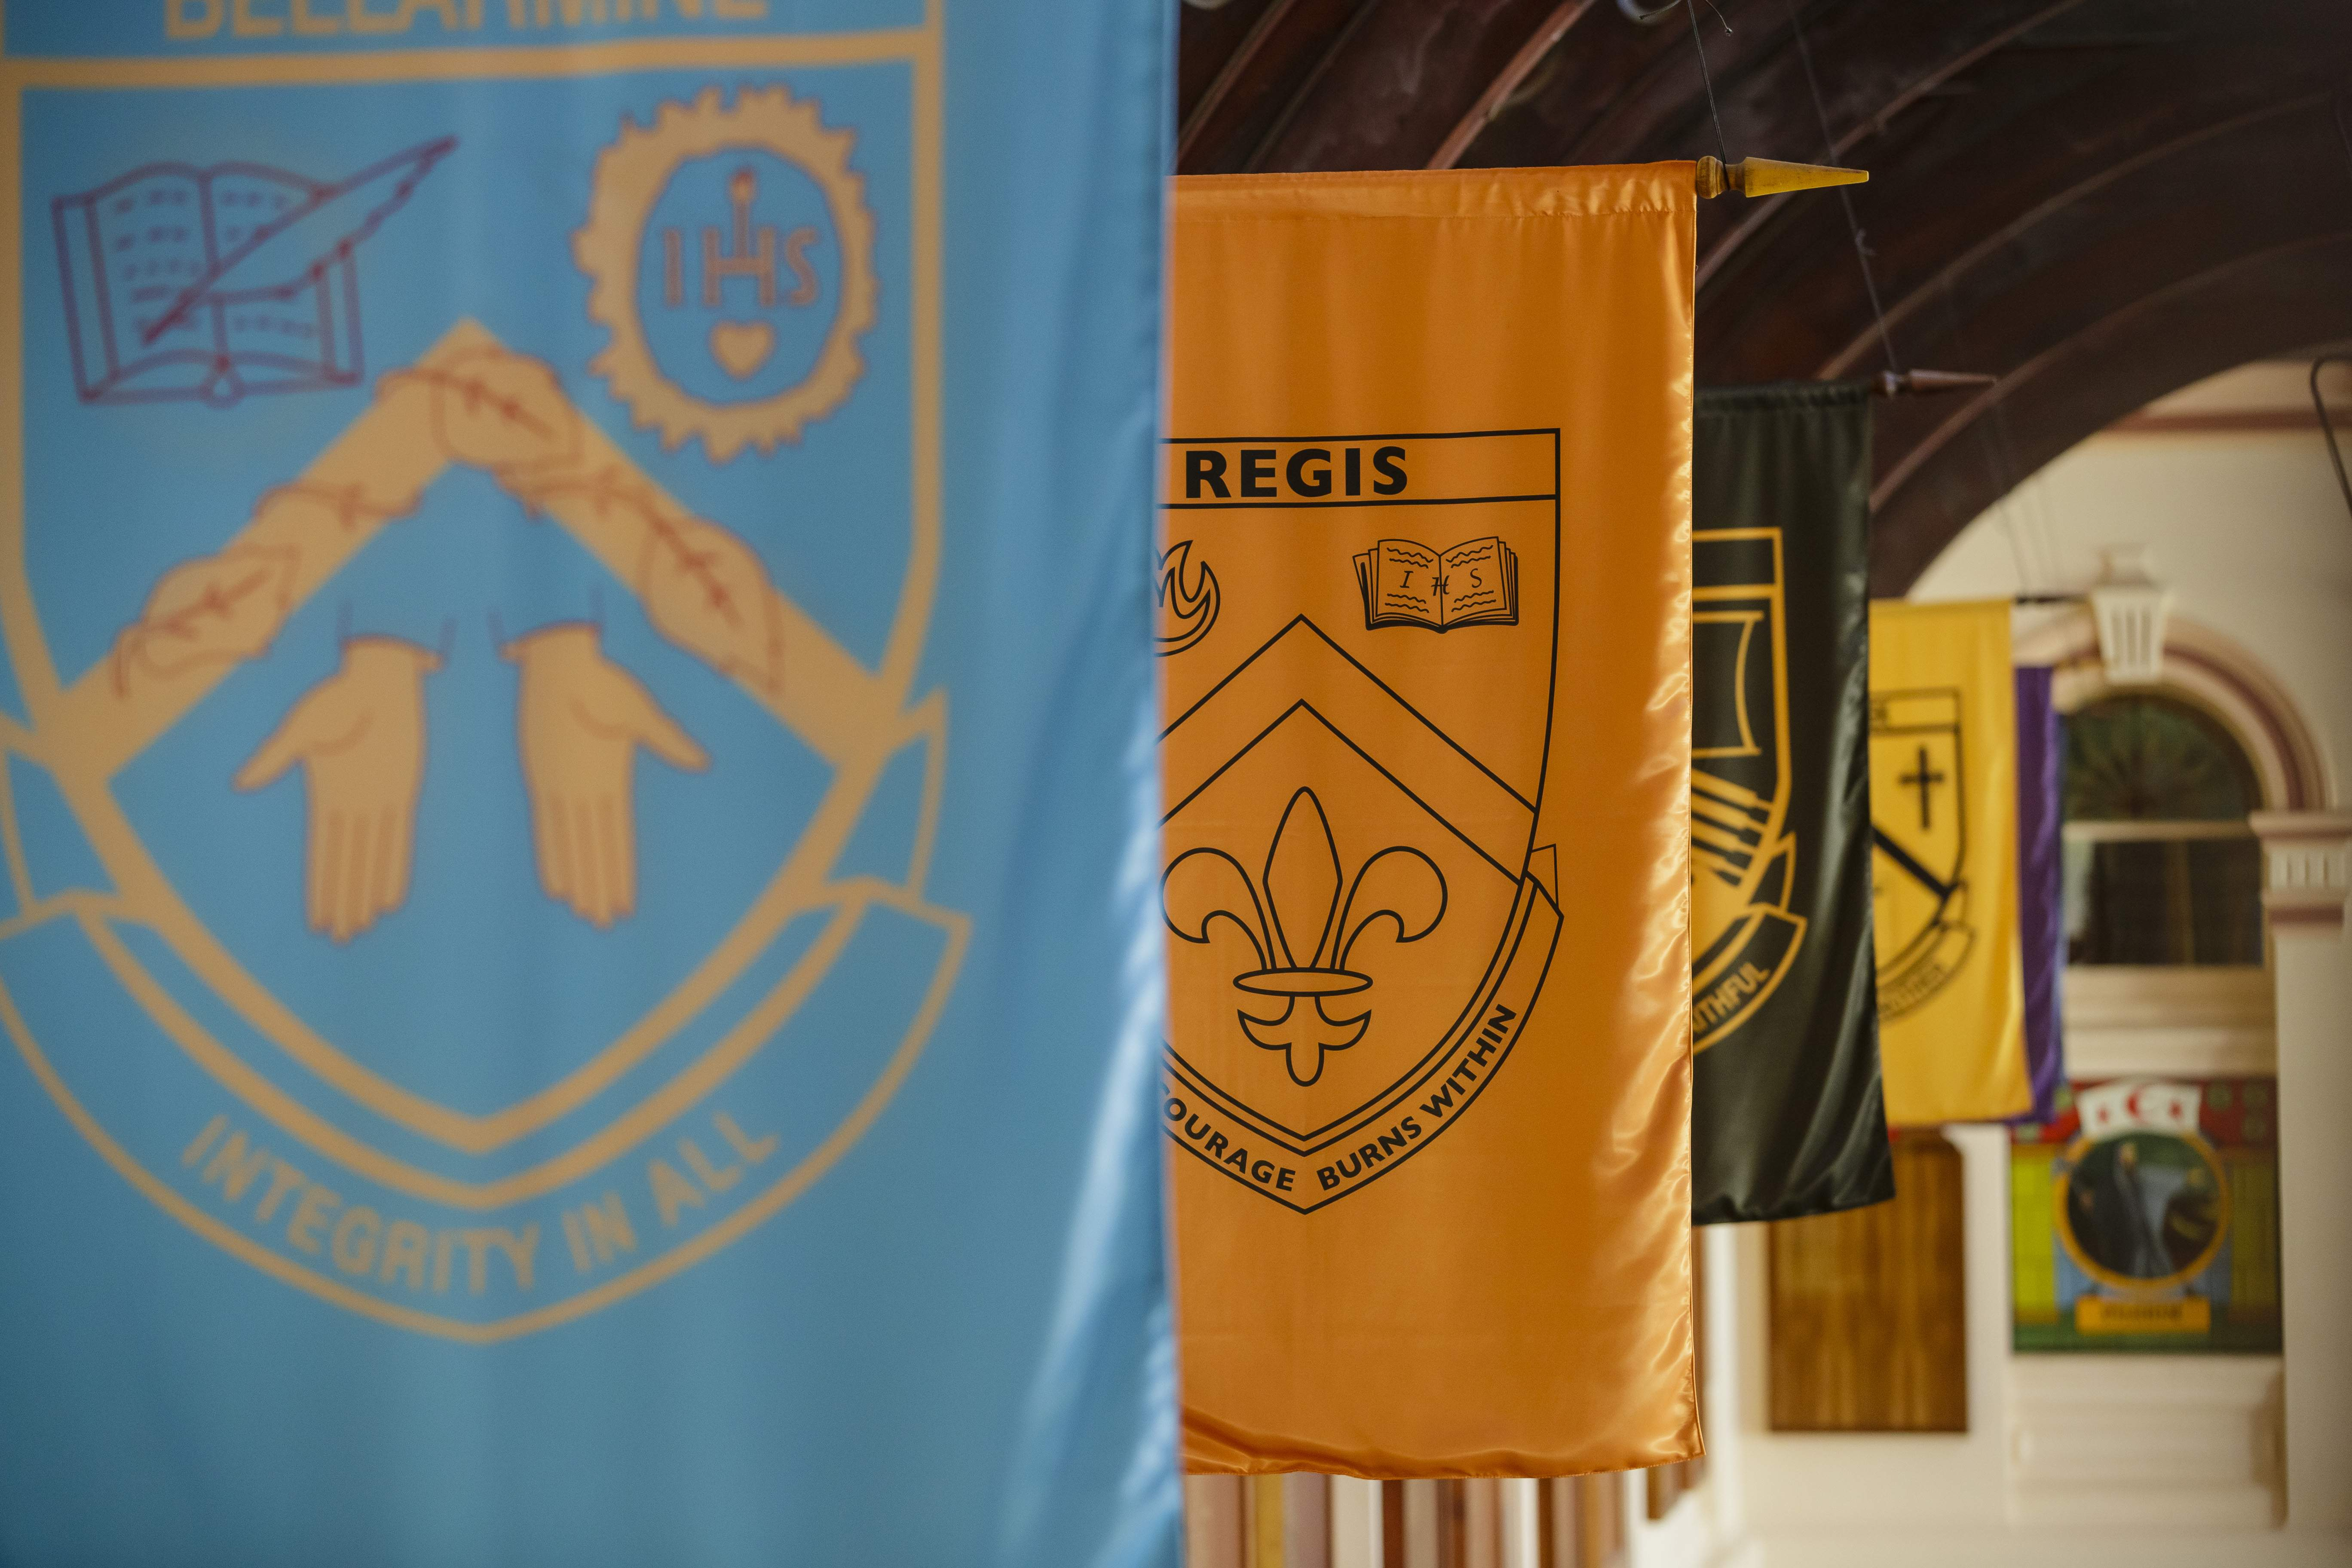 Our Houses and Years Banner